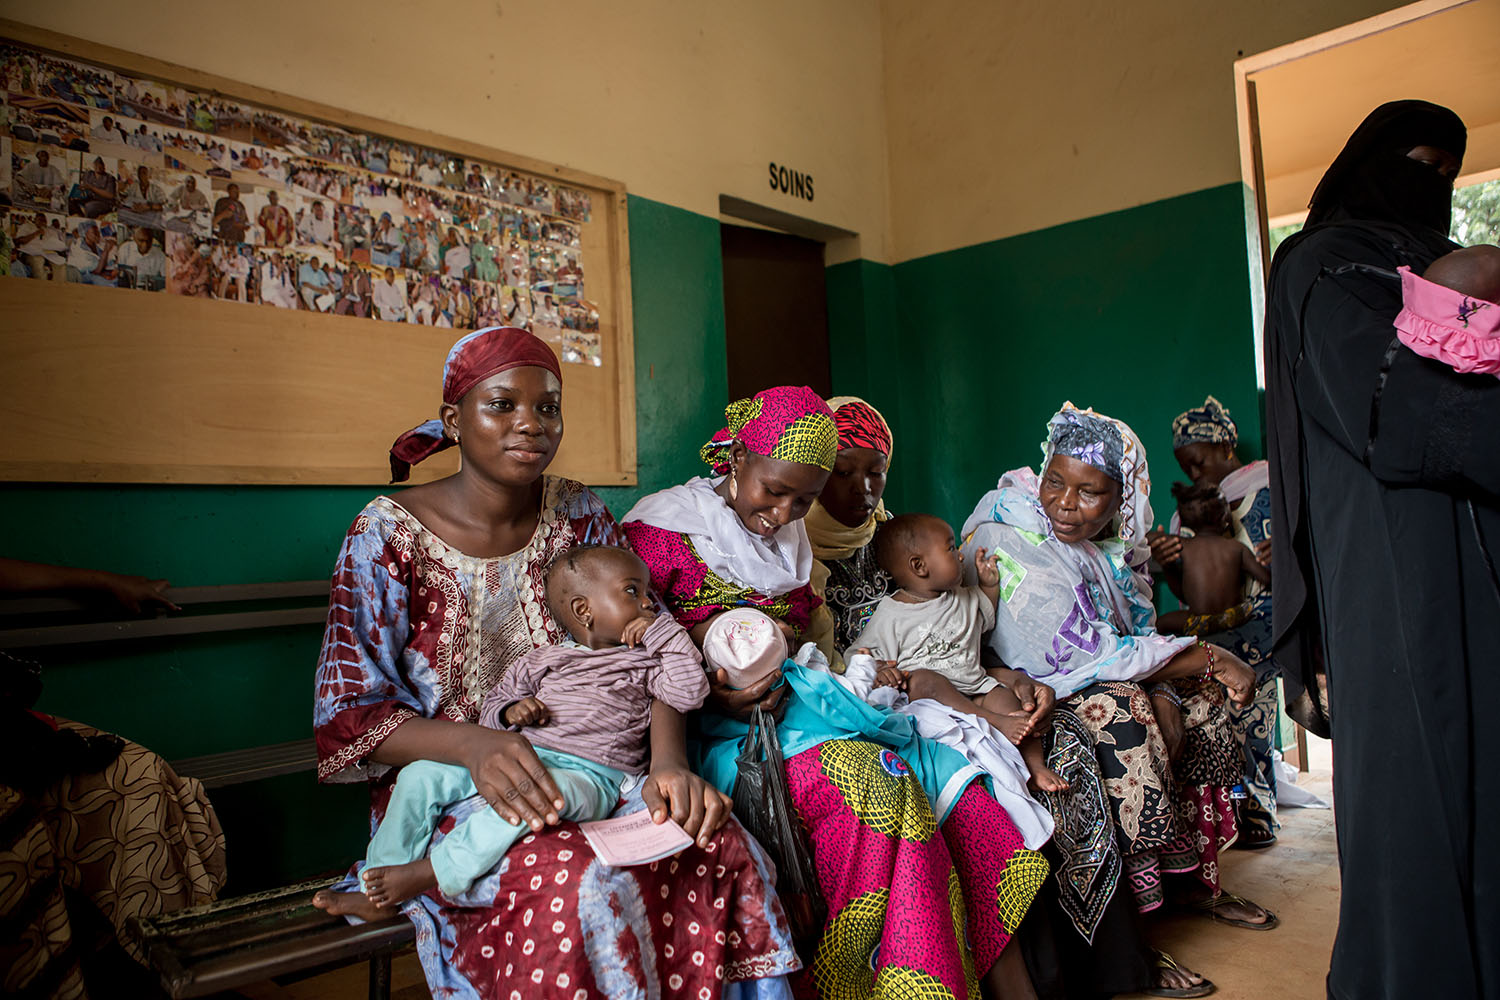 Women wait at the local clinic where their babies are examined, inoculated and cared for. Although Plumpy Nut is a major contributor to reducing the rate of malnutrition in the region, a behavioural change amongst the community is also necessary. Women'